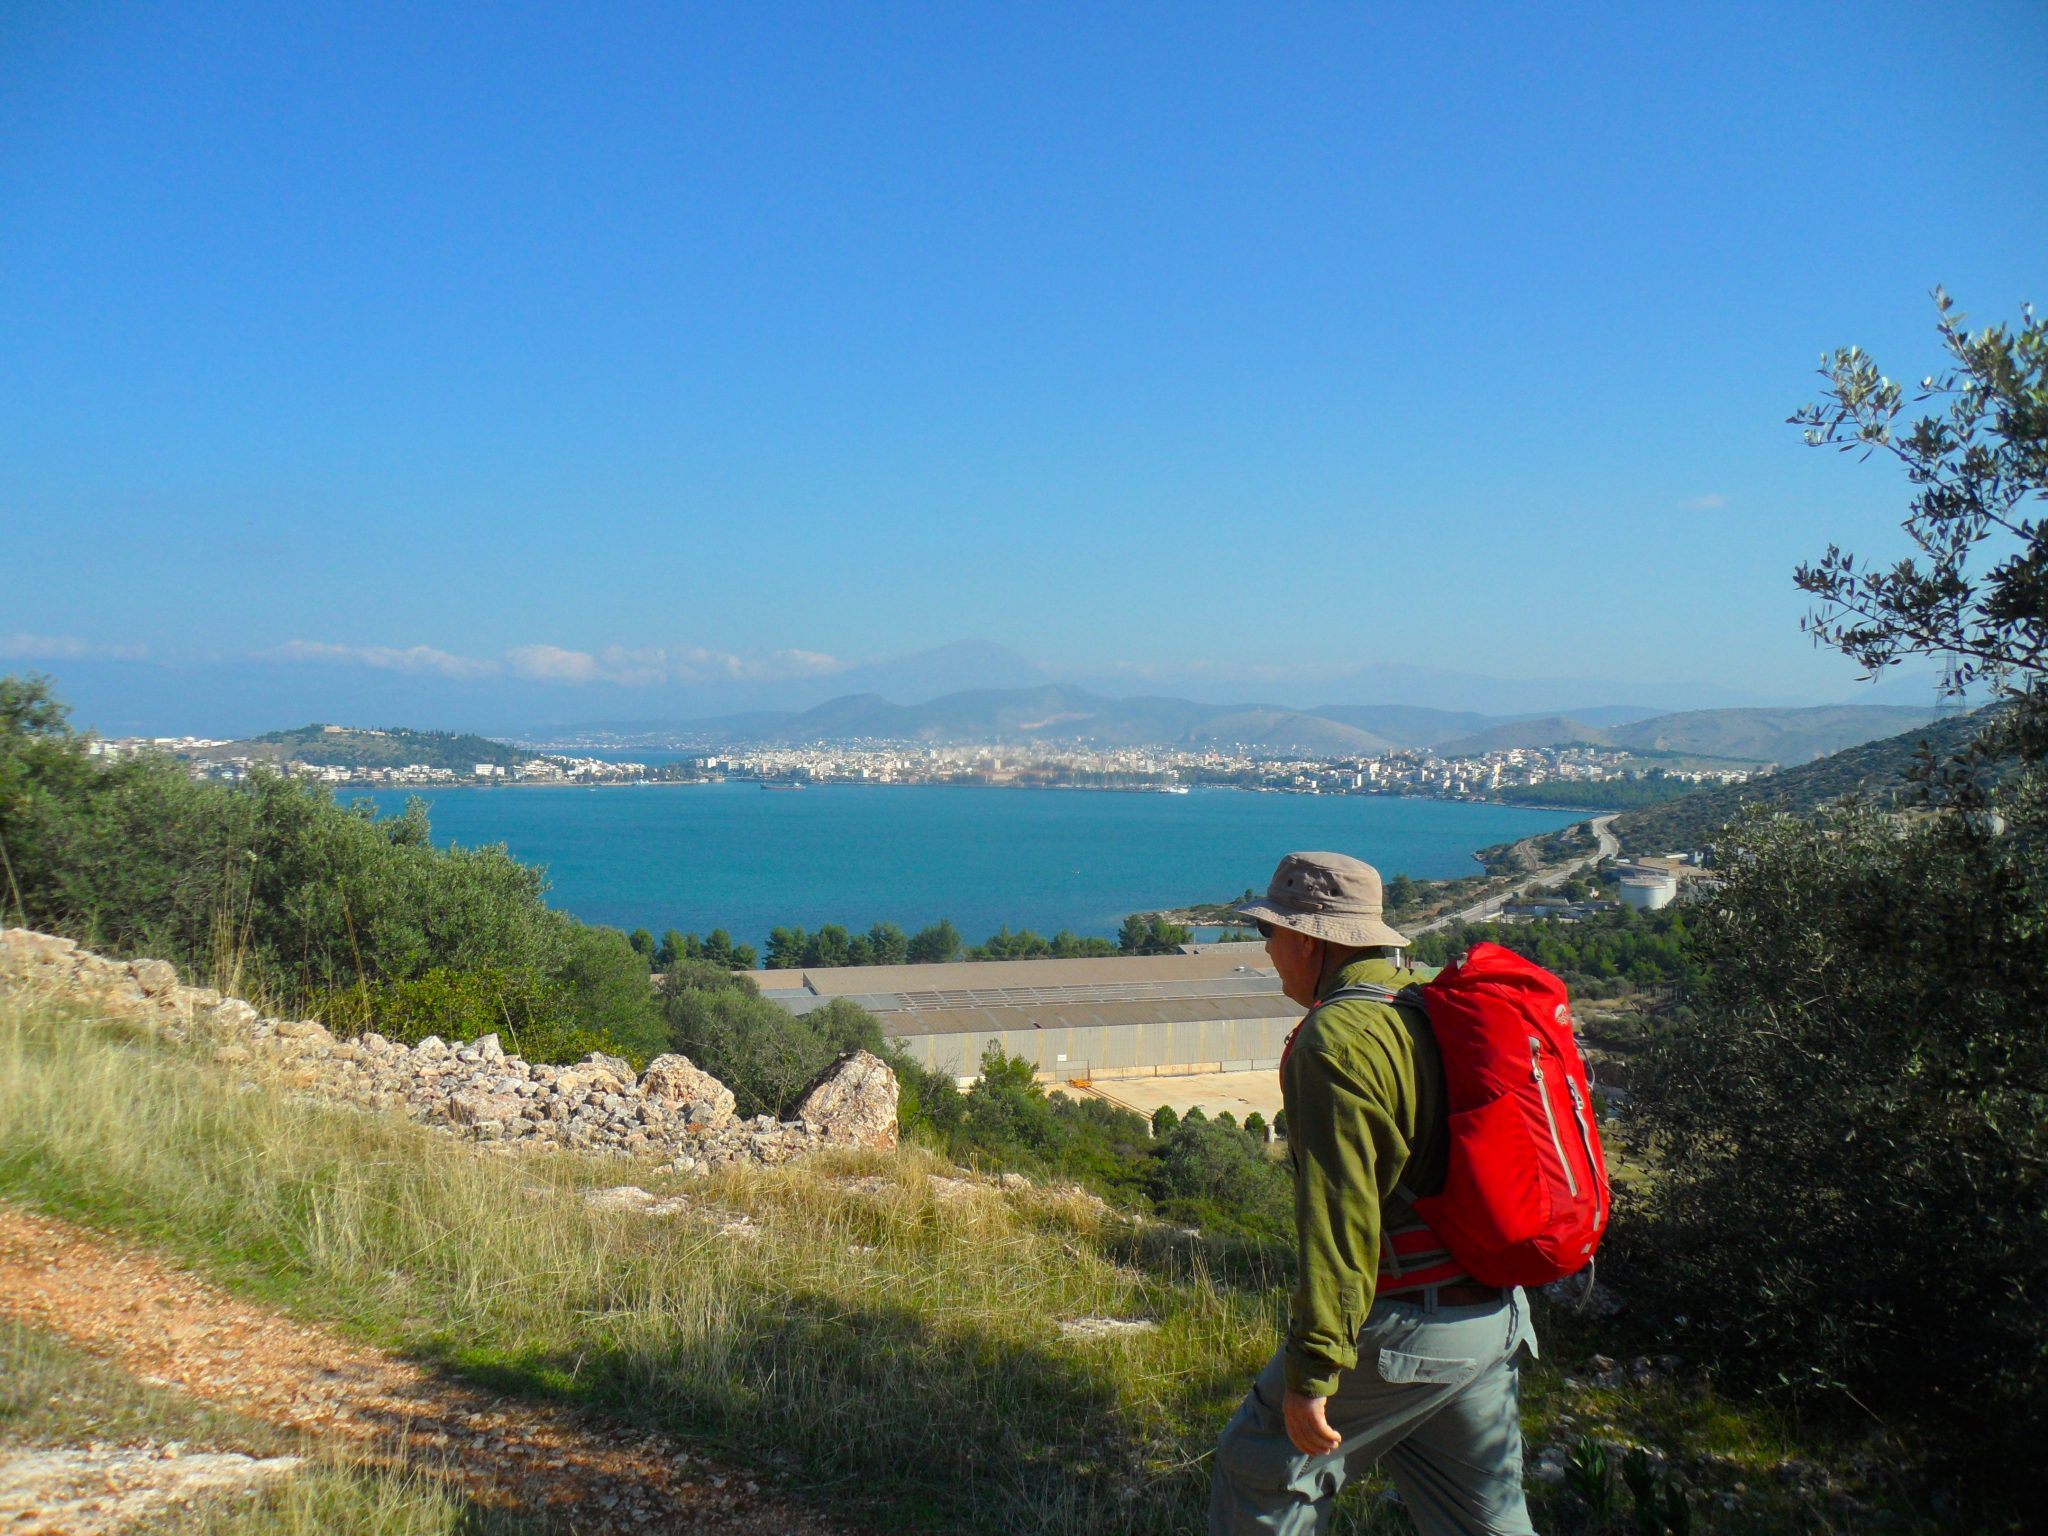 Hiking / Chalkis to Tzivani Winery